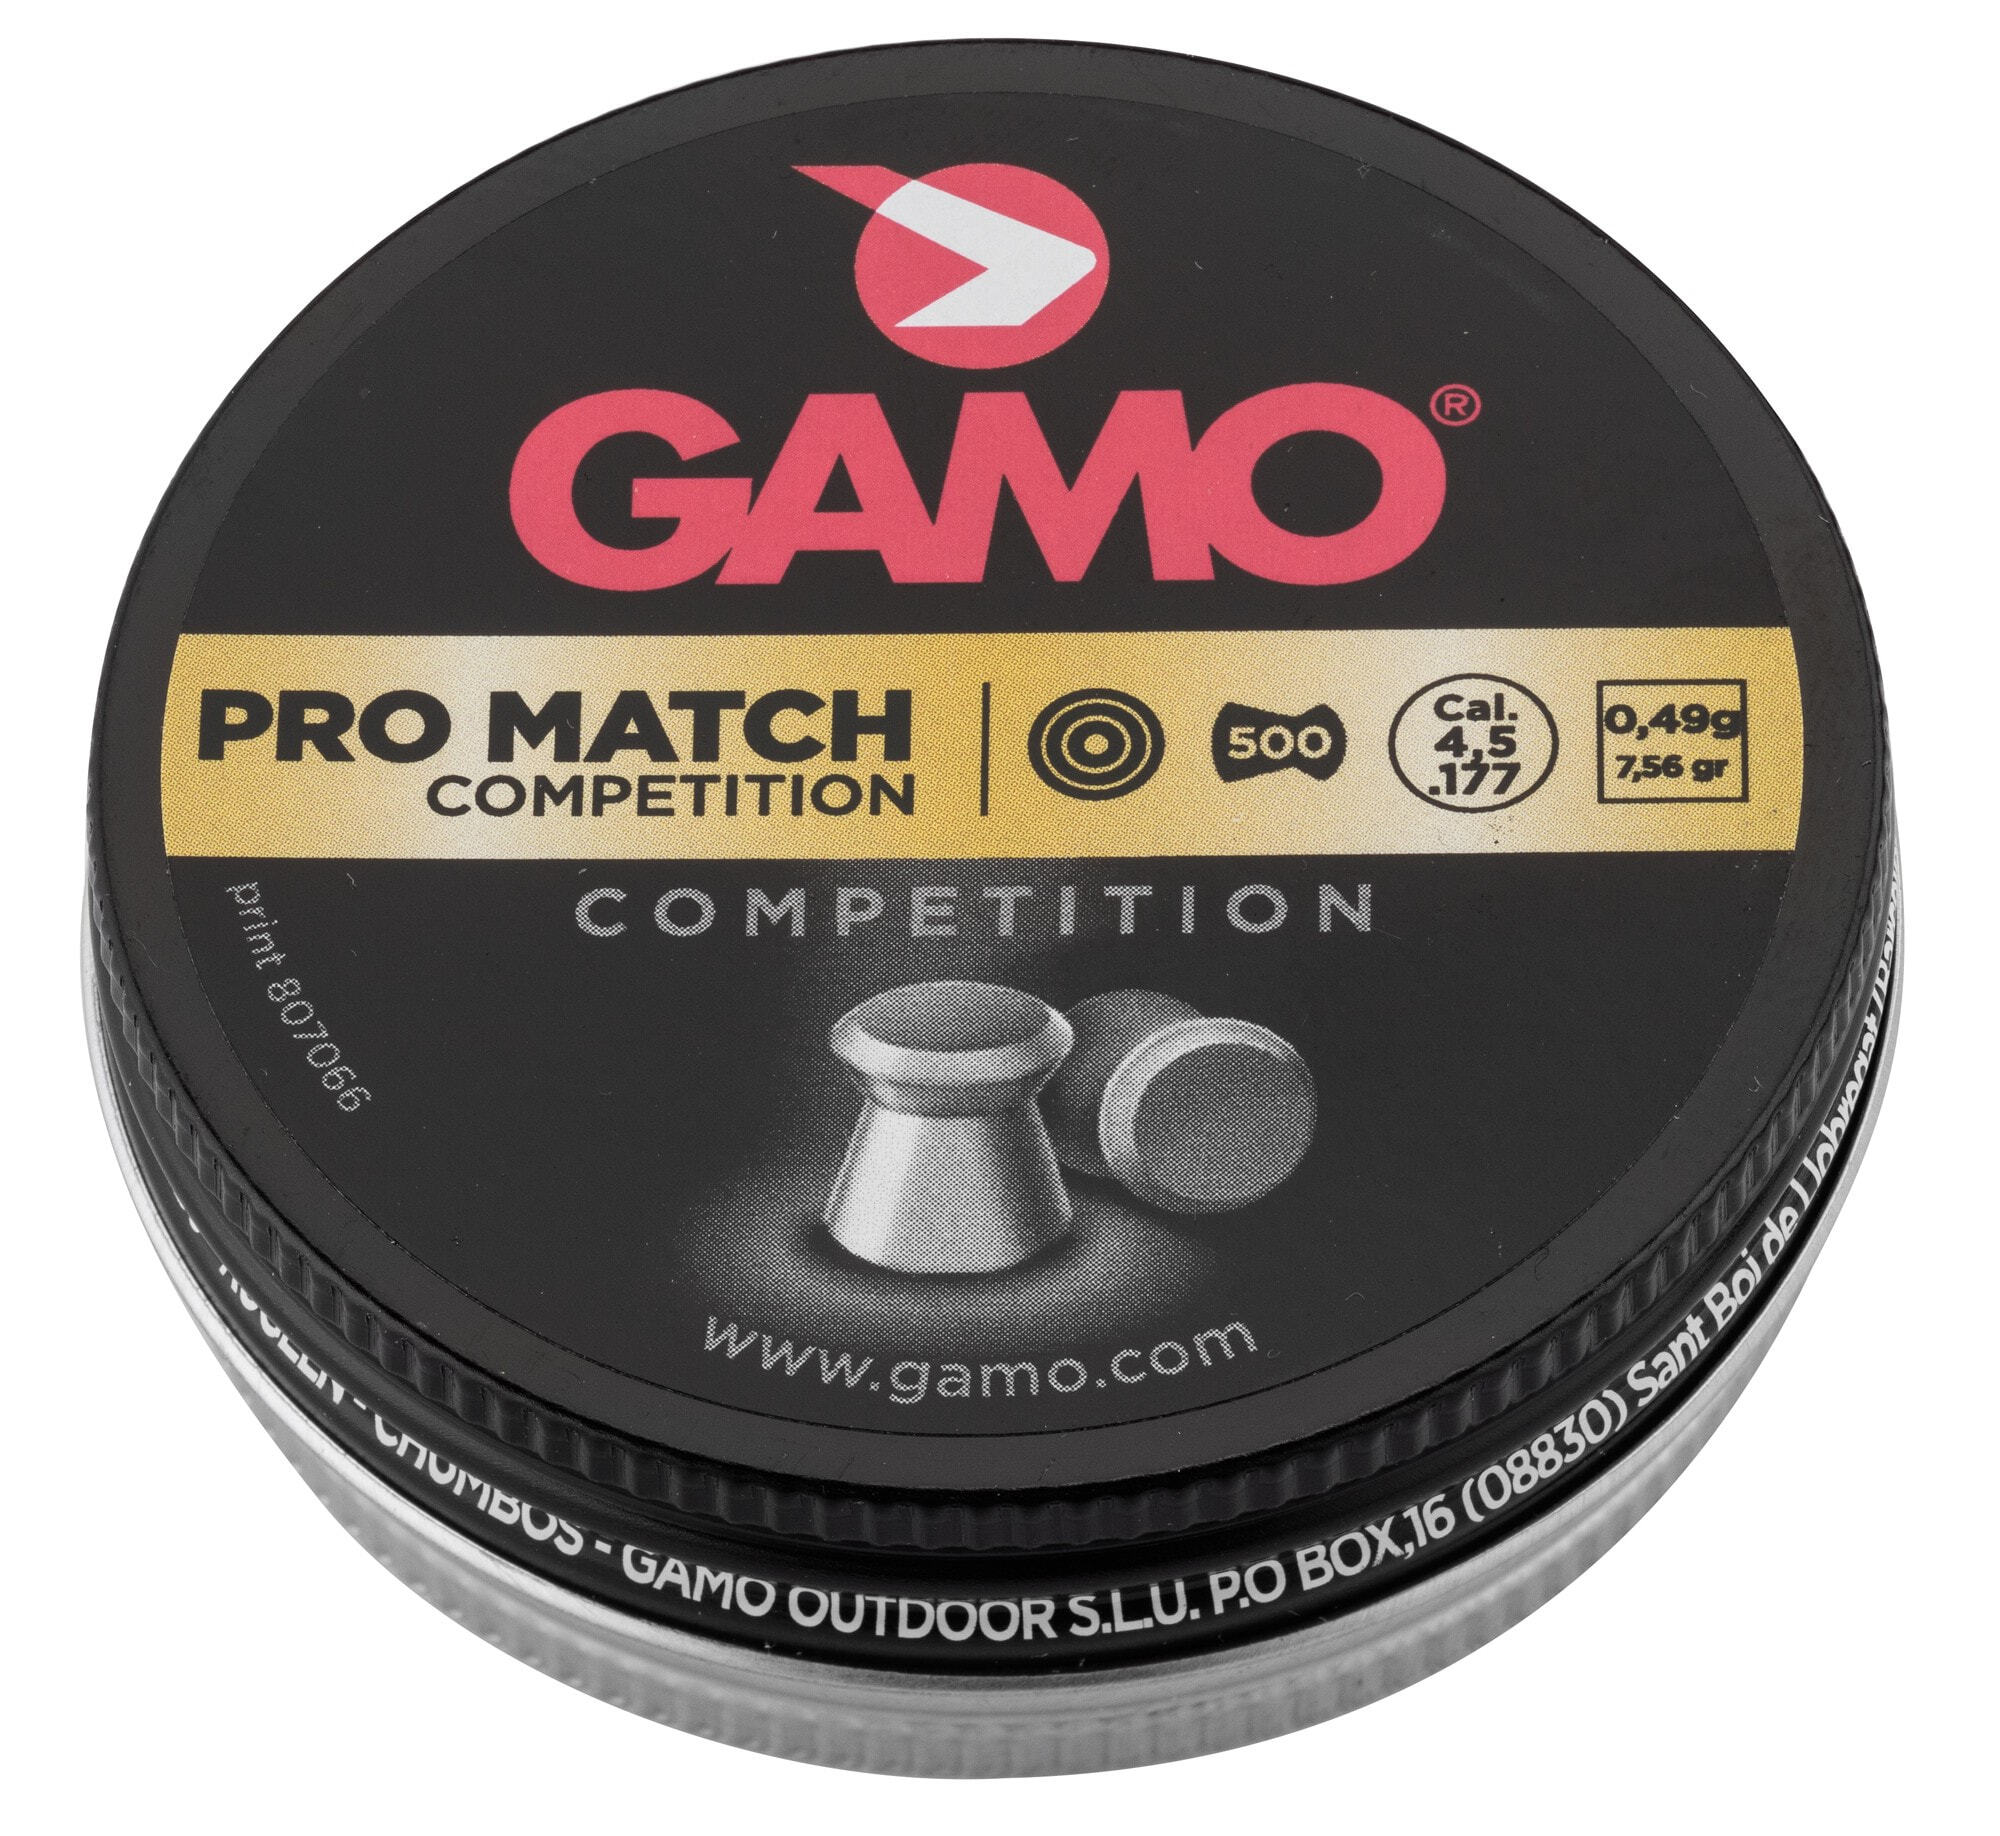 G3150 Plombs PRO MATCH COMPETITION 4,5 mm - GAMO - G3150